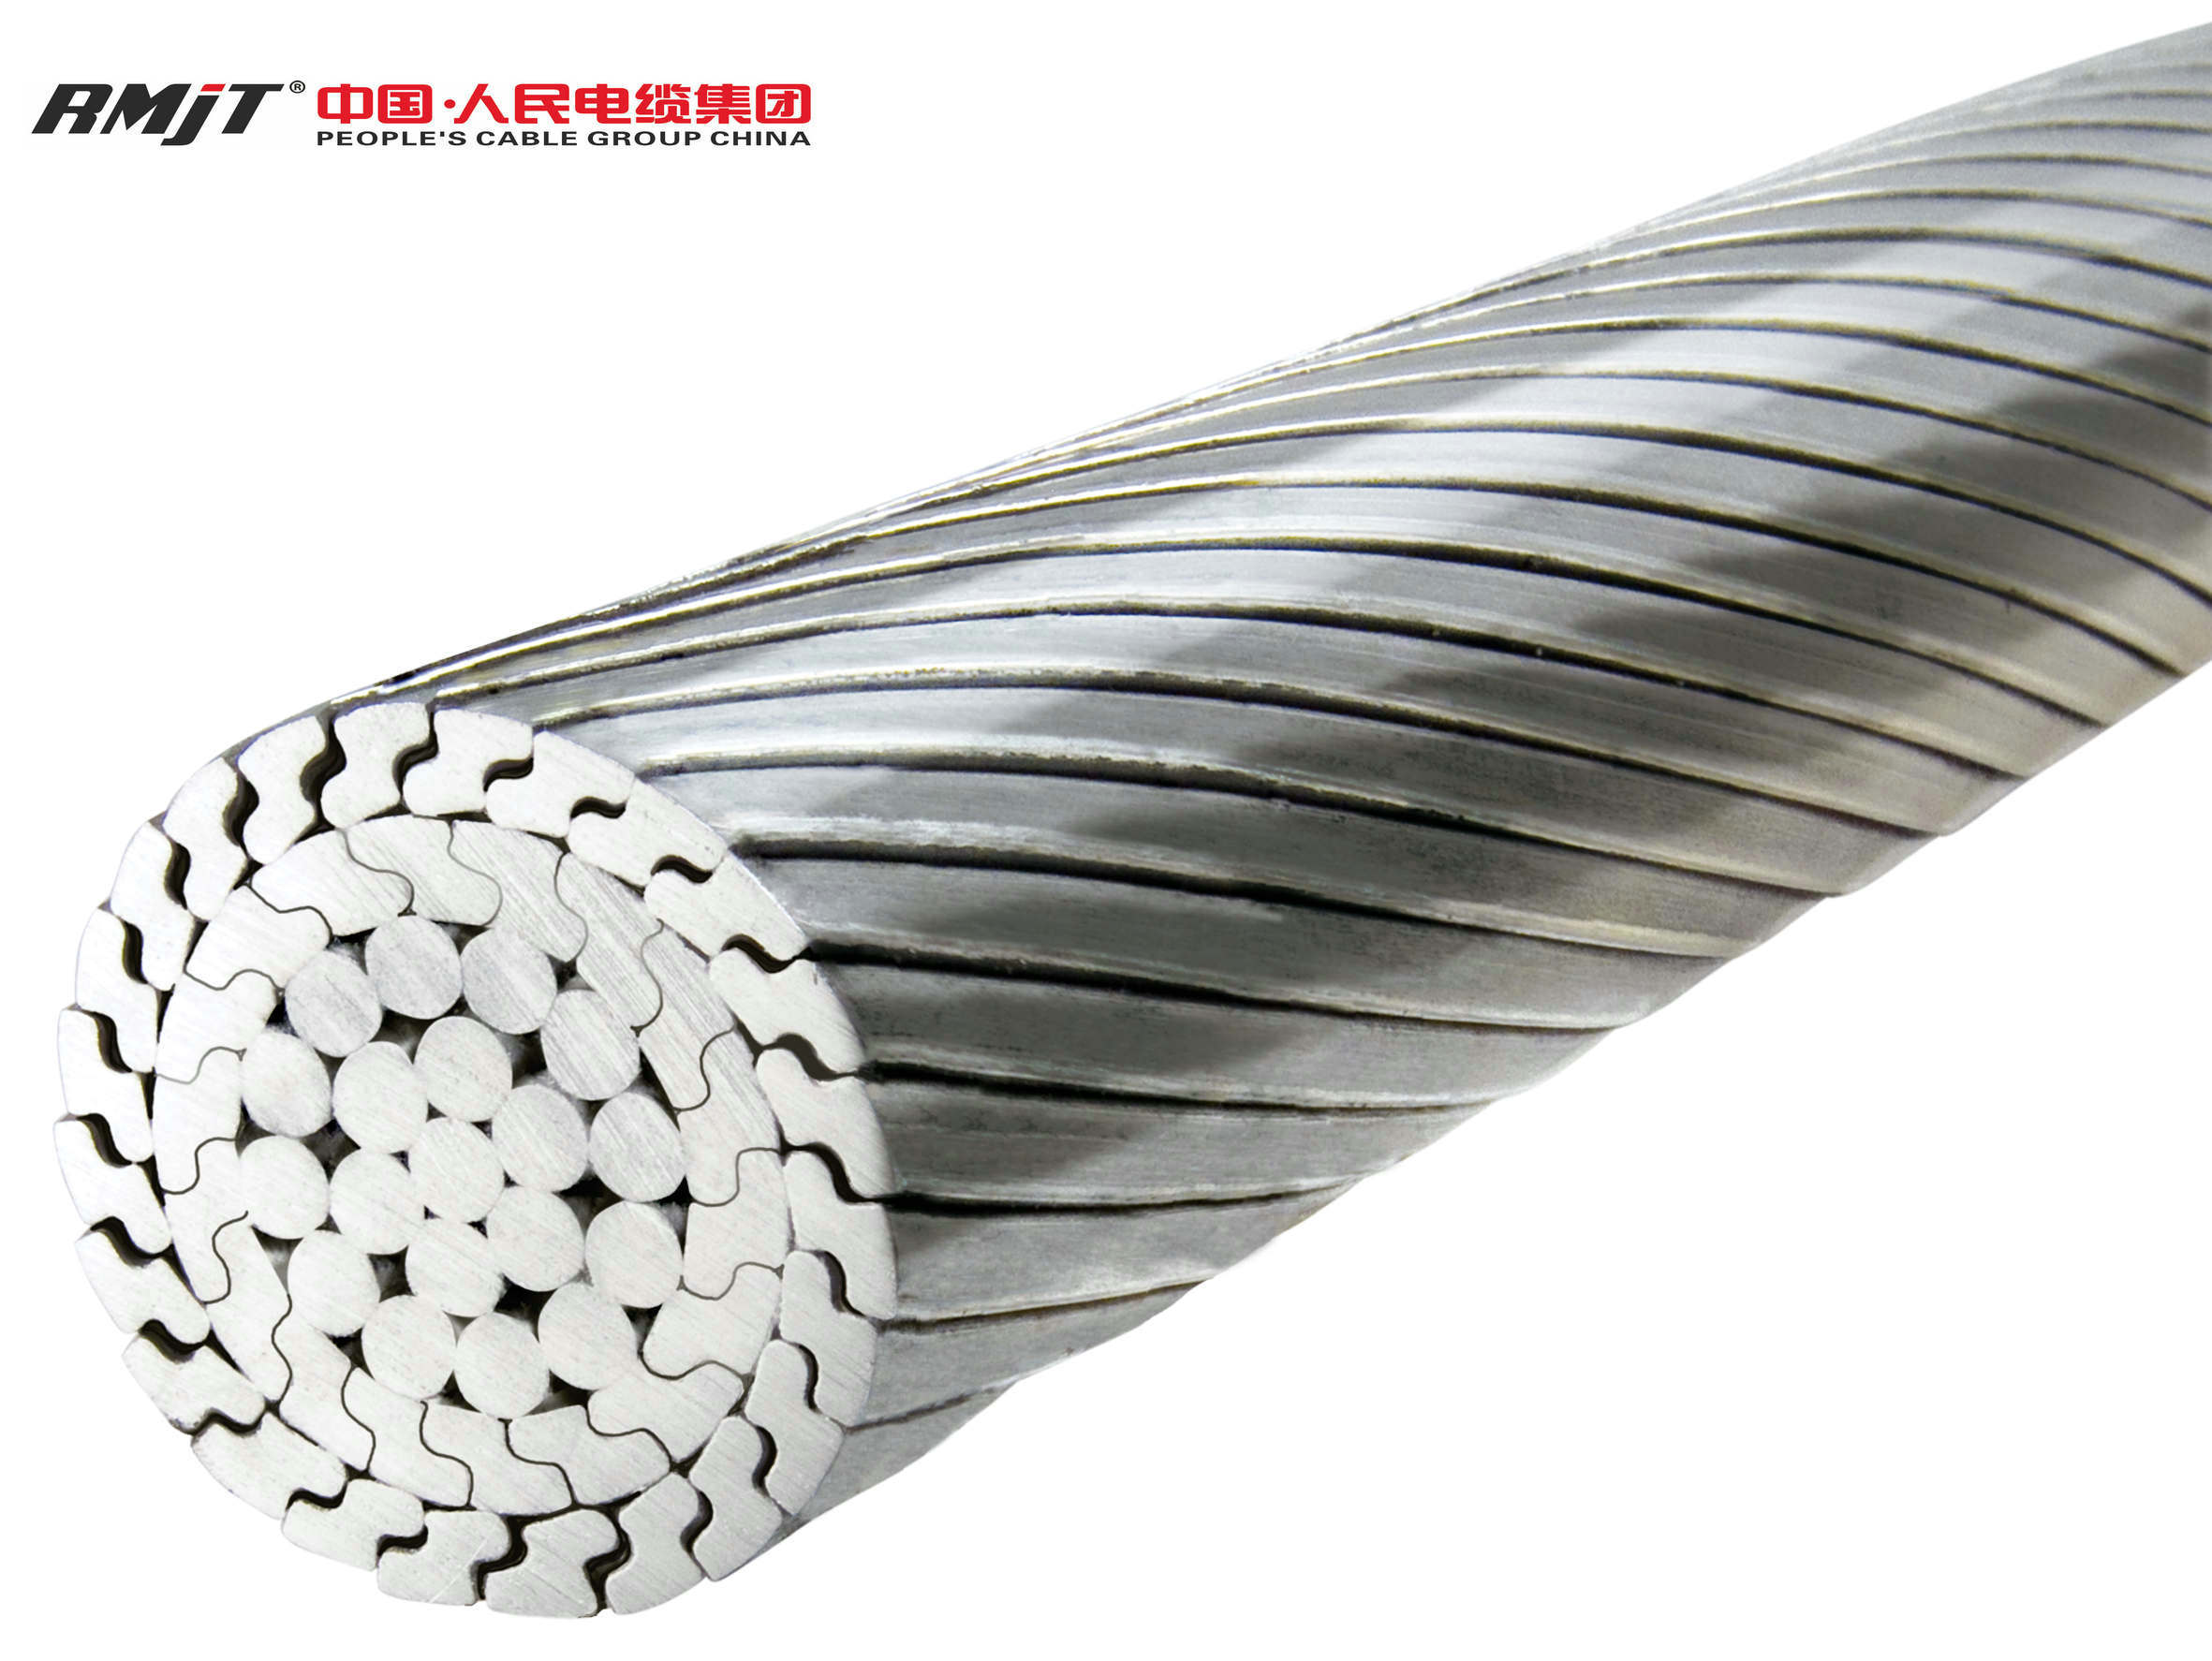 Overhead Cable Aluminum Conductor ASTM B399 AAAC Conductor